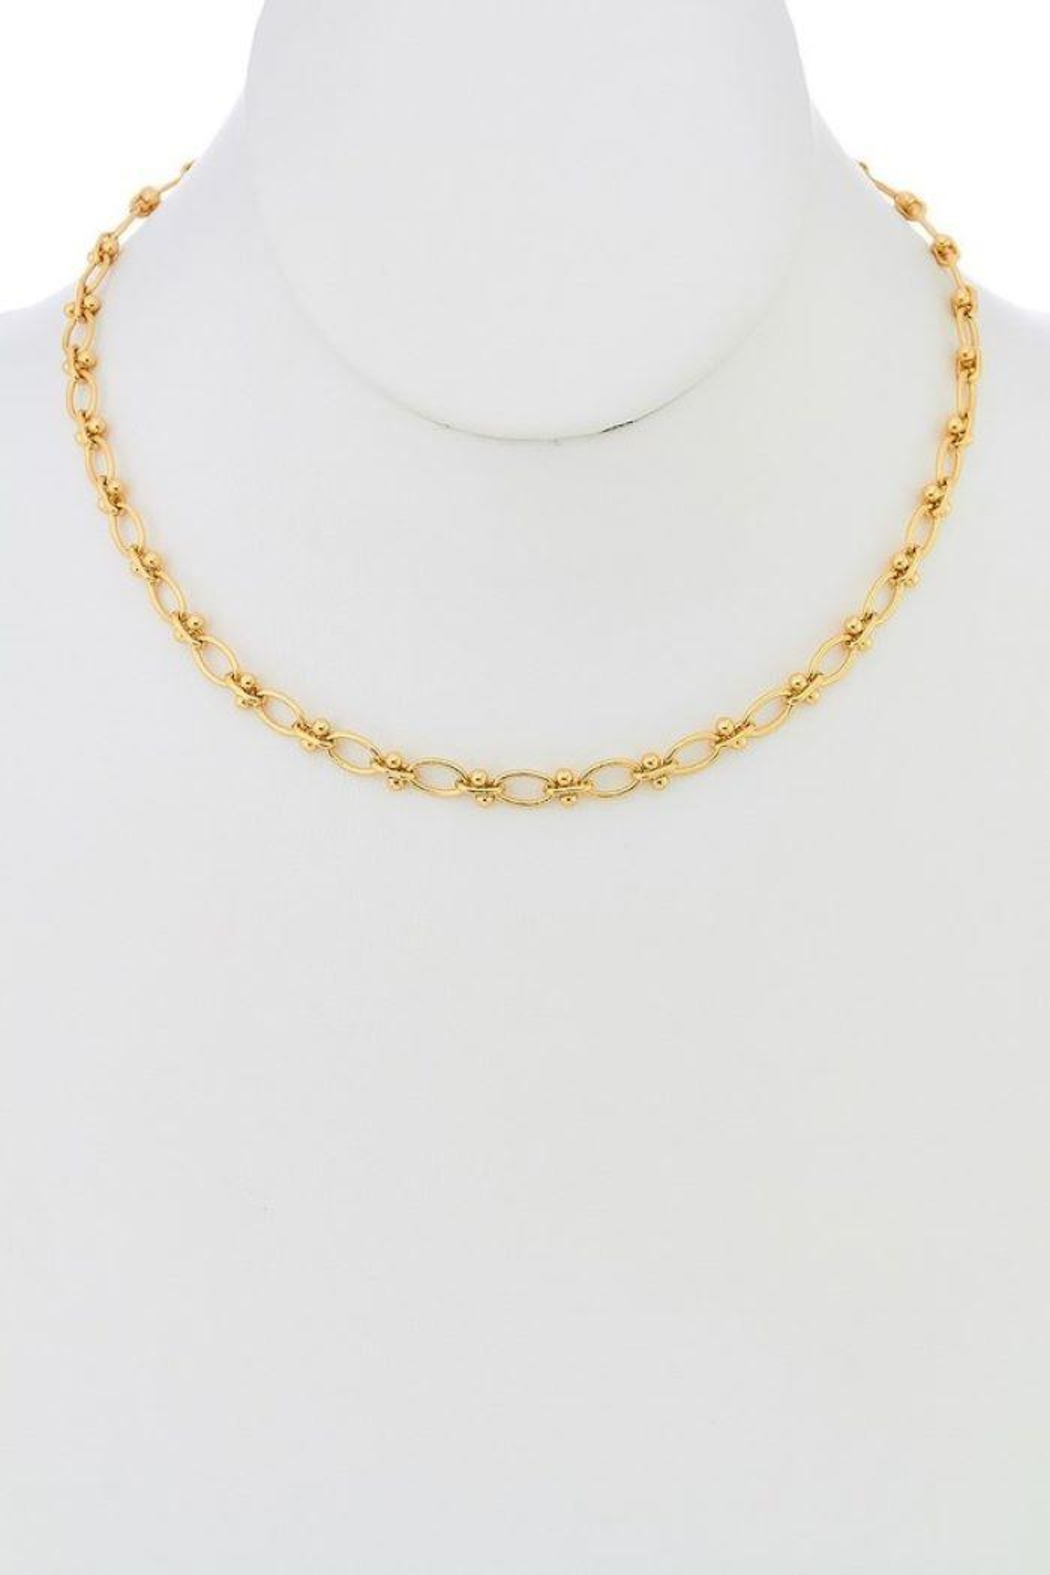 Ana Accessories Girl Chain Necklace - Main Image